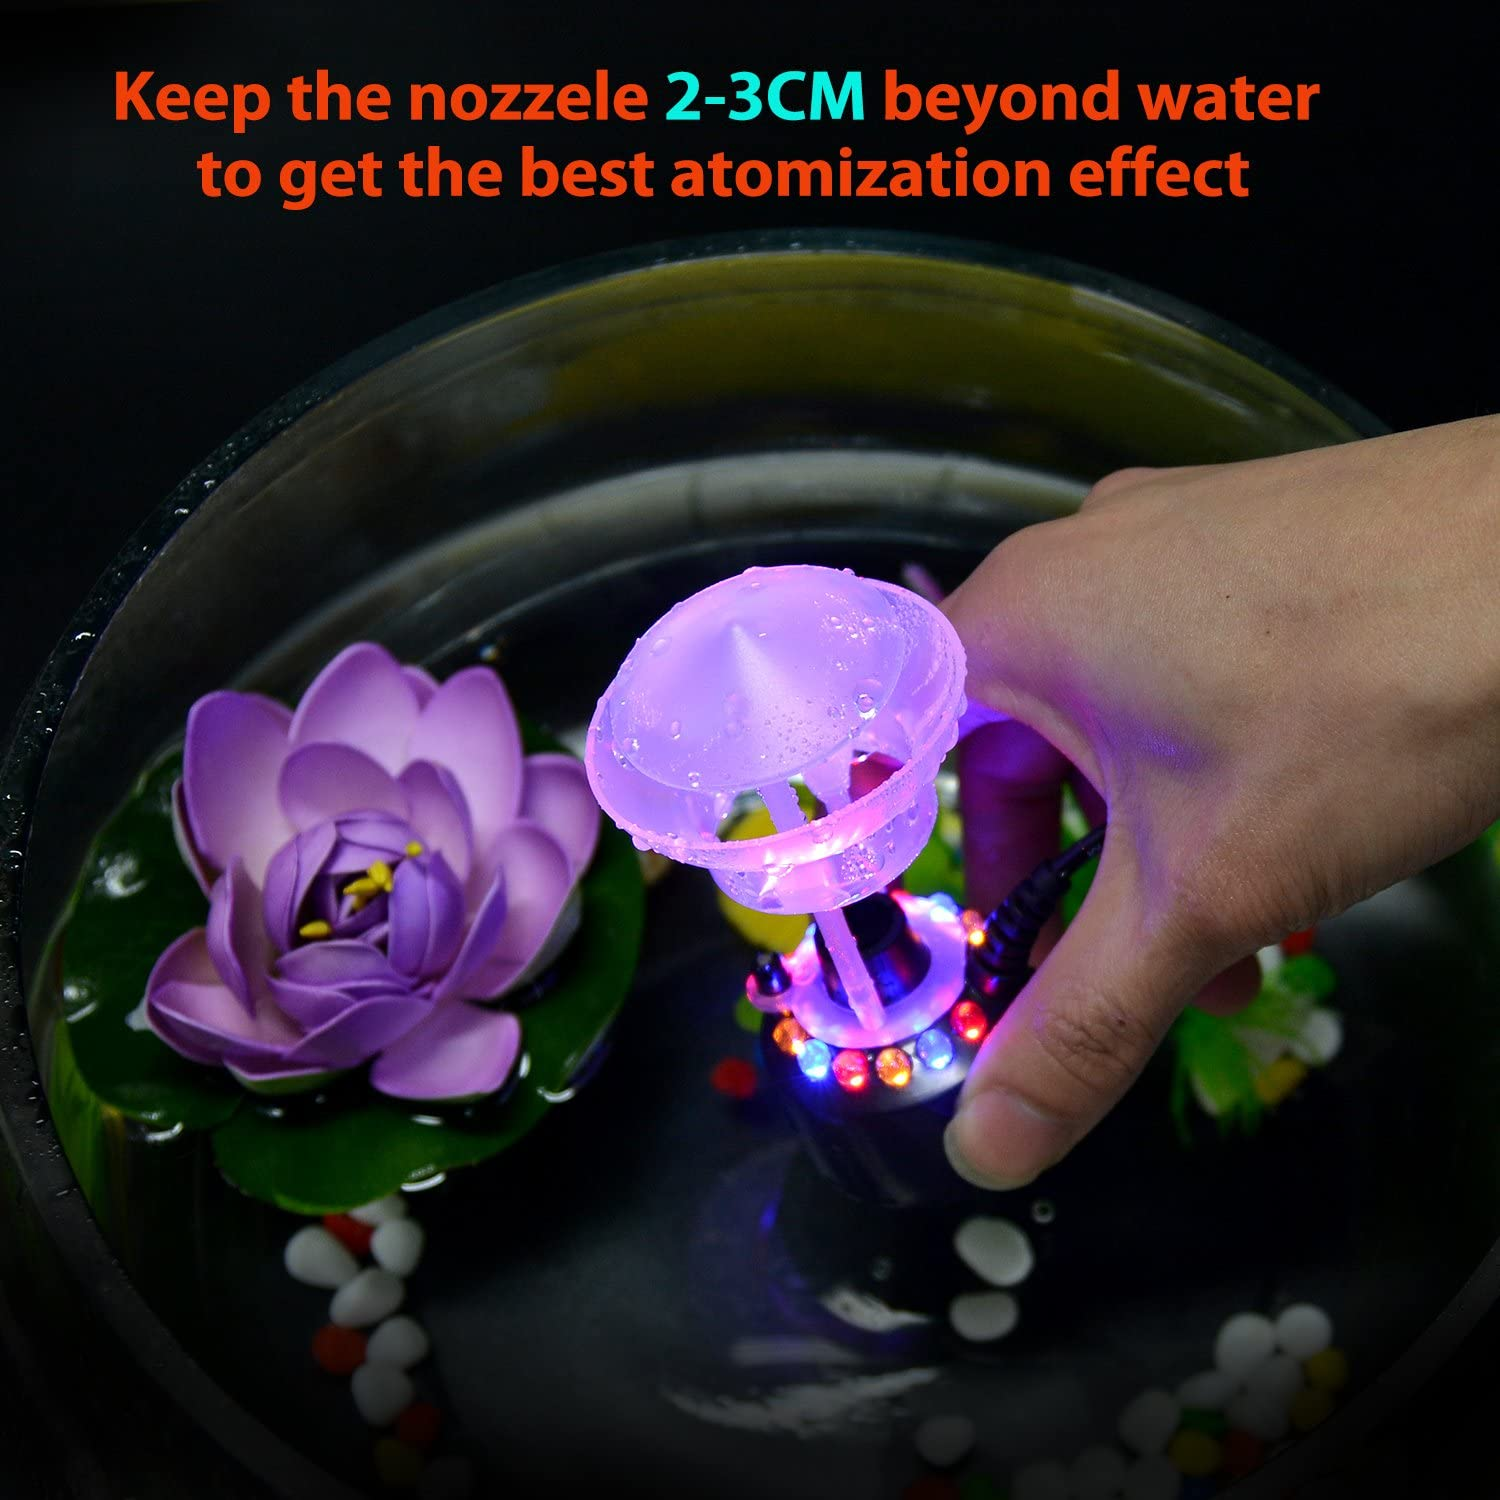 Mini Size Large Capacity of Mist,with Splash Guard Fitnate Mist Maker 12 LED Mister Fogger Water Fountain Pond Fog Machine Atomizer Air Humidifier Perfect for Halloween and Other Holidays Light Flashing with Guard